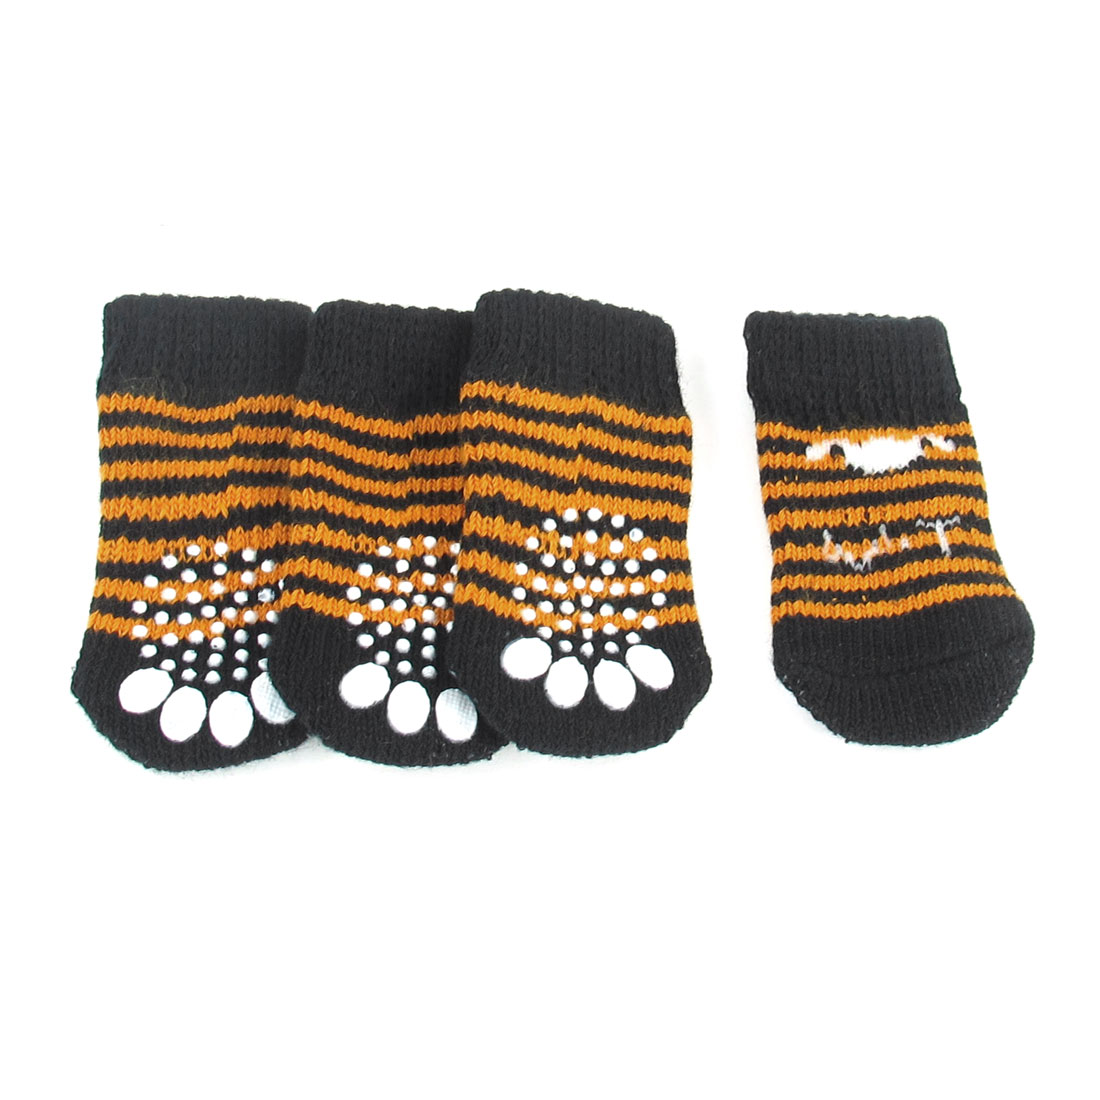 2 Pairs Paw Print Nonslip Stretchy Acrylic Pet Dog Socks Black Orange Size S